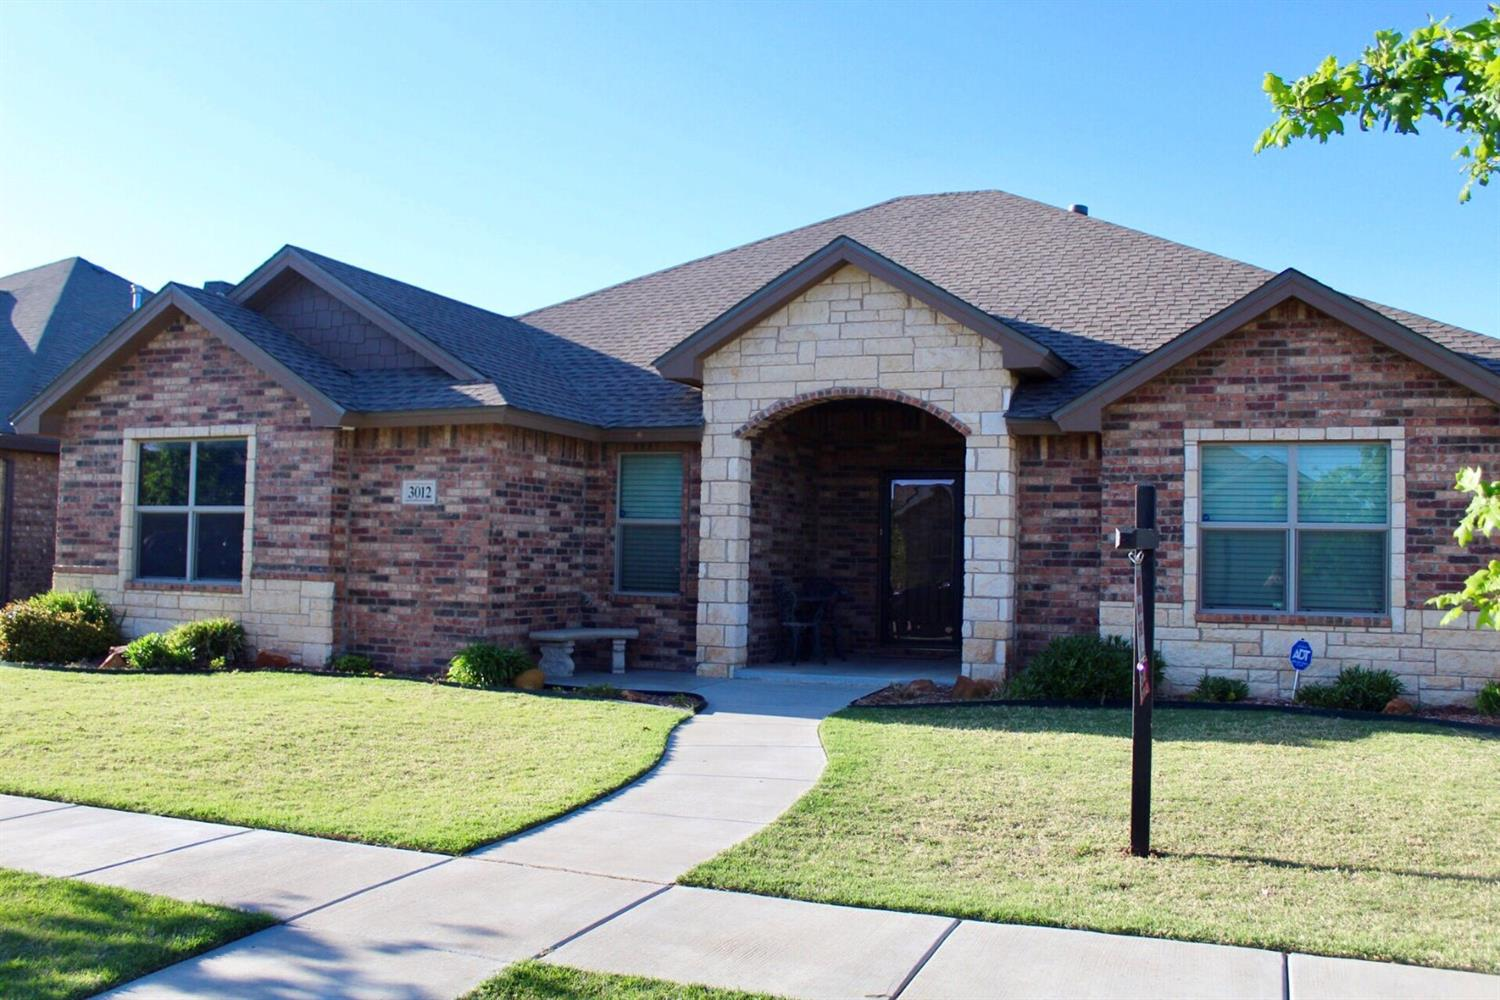 3012 112th Street, Lubbock in Lubbock County, TX 79423 Home for Sale